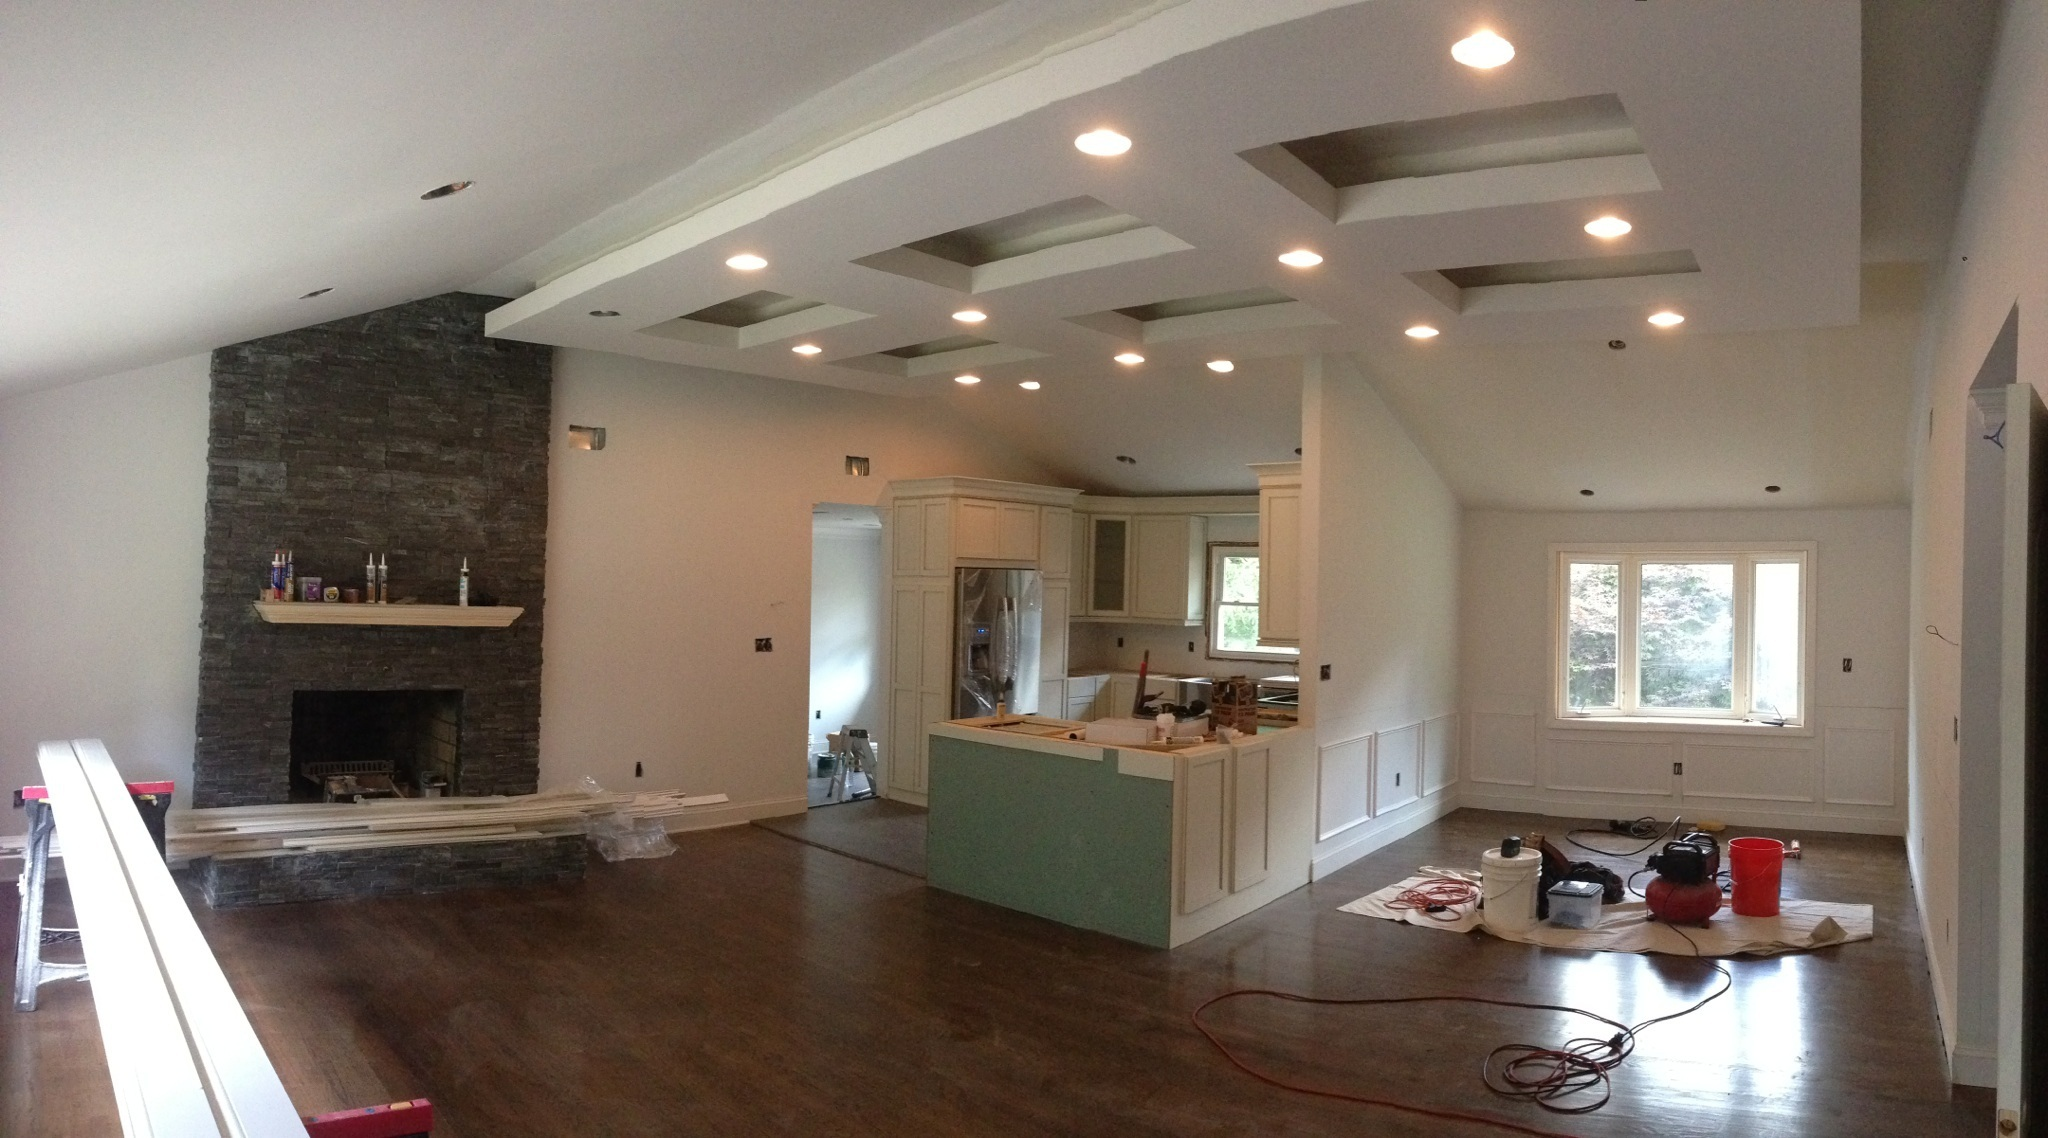 House Remodeling Contractors Near Me 2016 Guide To Home Remodeling In And Around Central Valley